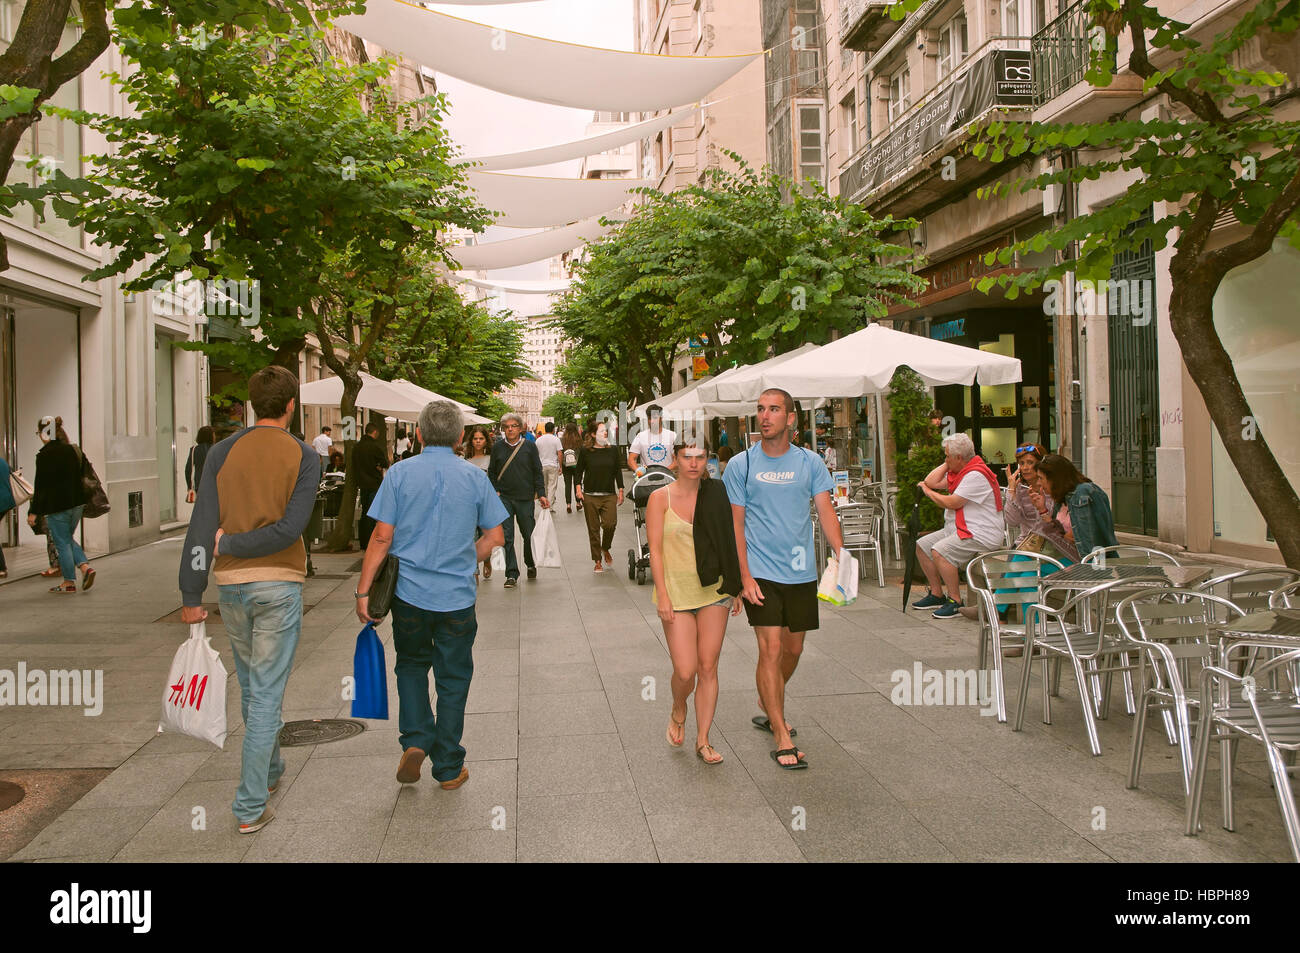 Pedestrian street, Orense, Region of Galicia, Spain, Europe - Stock Image